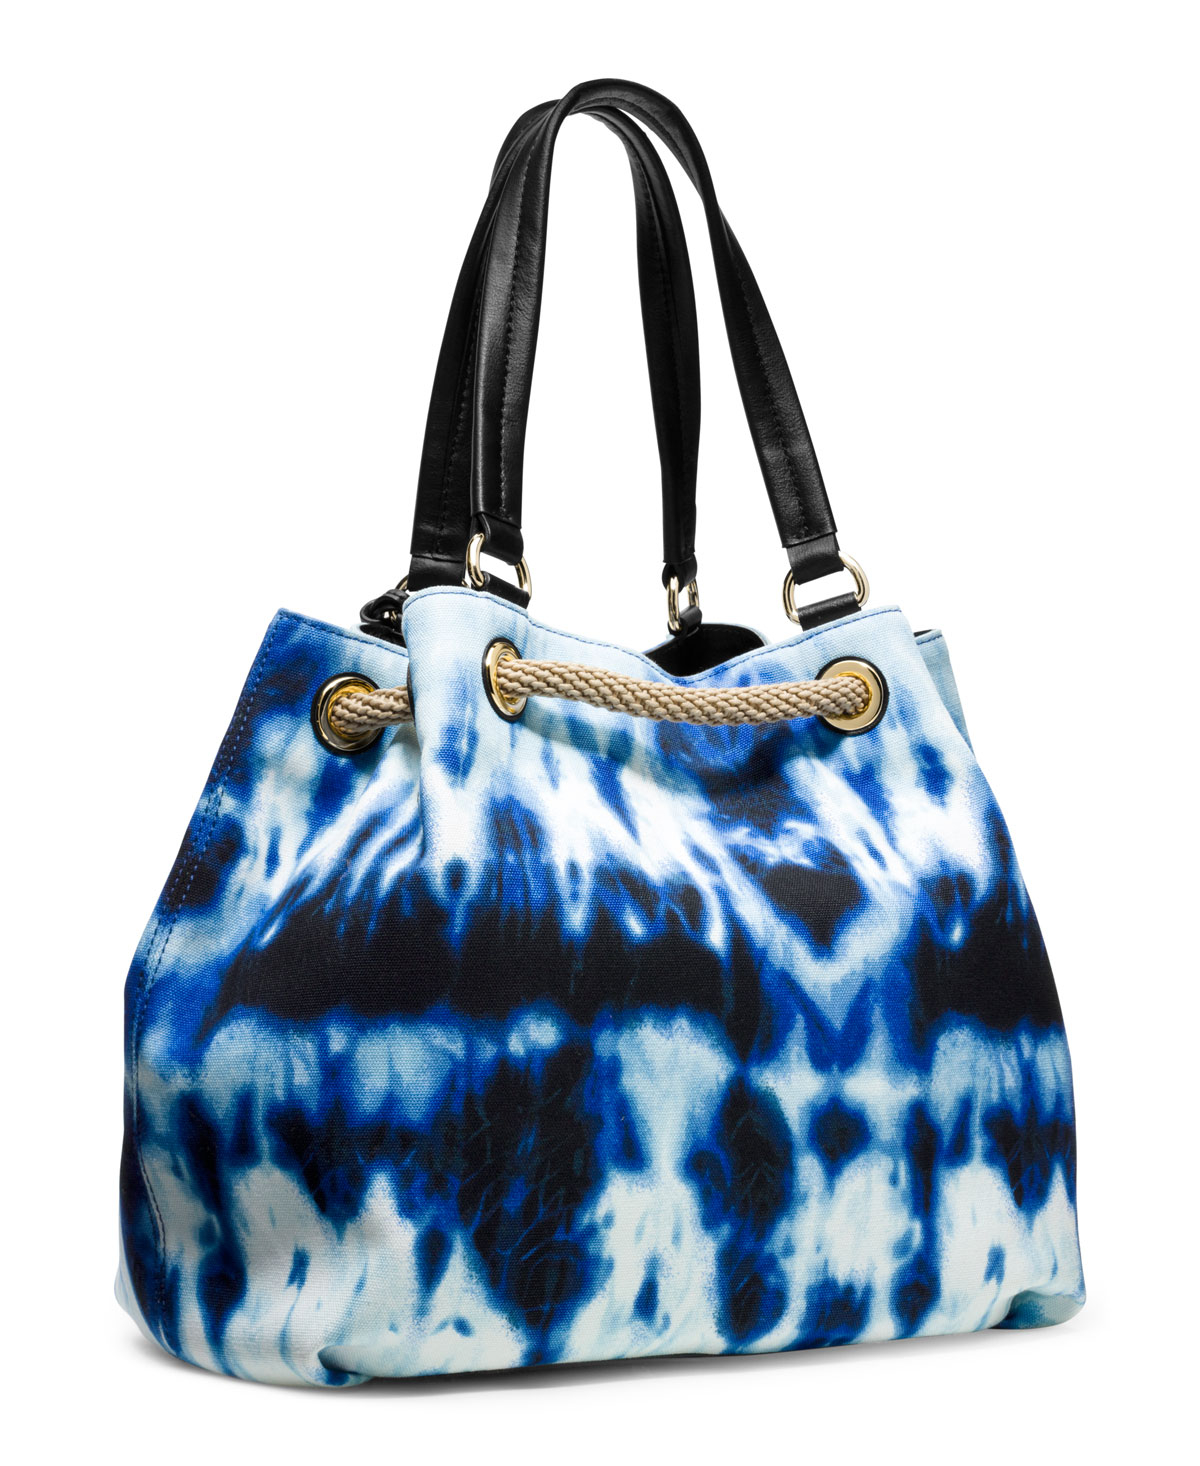 Tie Dye Gathered Tote Lyst Michael Kors Large Marina In Bl